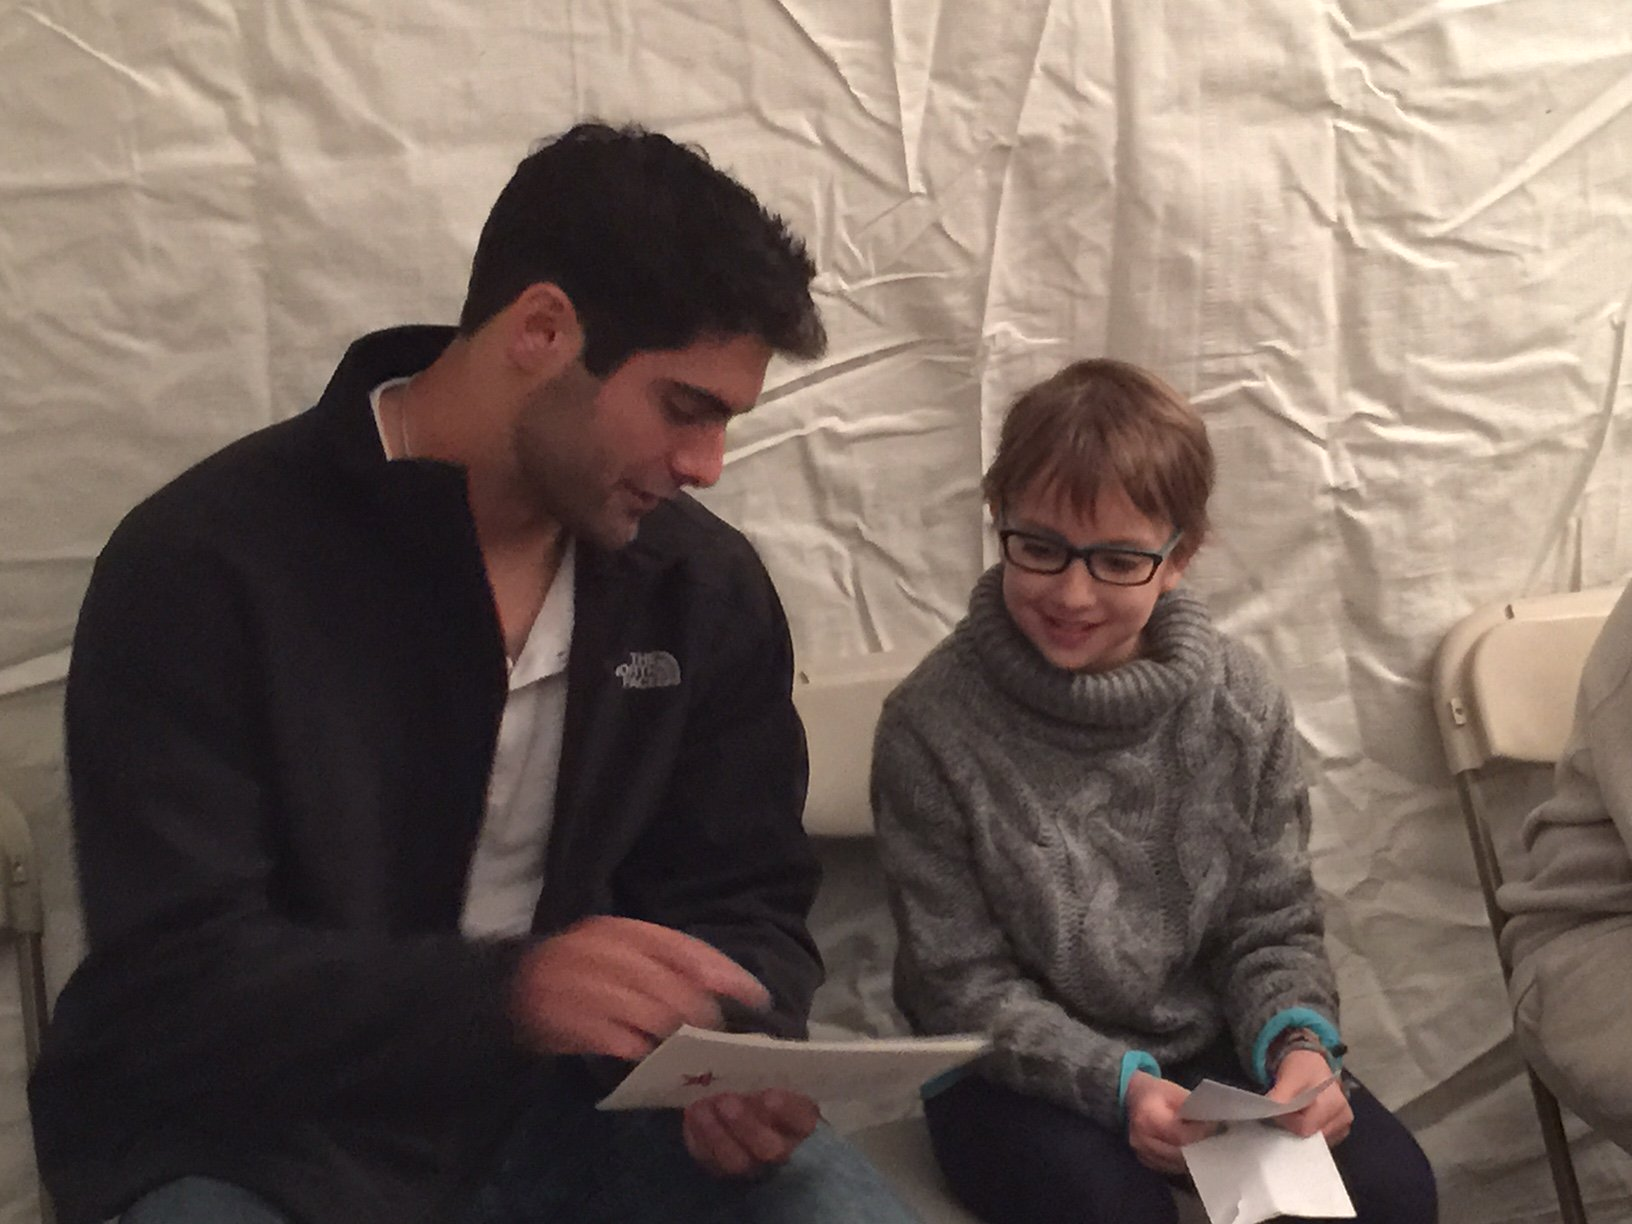 "Jimmy Garoppolo Brothers >> Make-A-Wish Mass RI on Twitter: "".@Patriots @JimmyG_10 joined wish kid Eleanor, 9, Friday for ..."